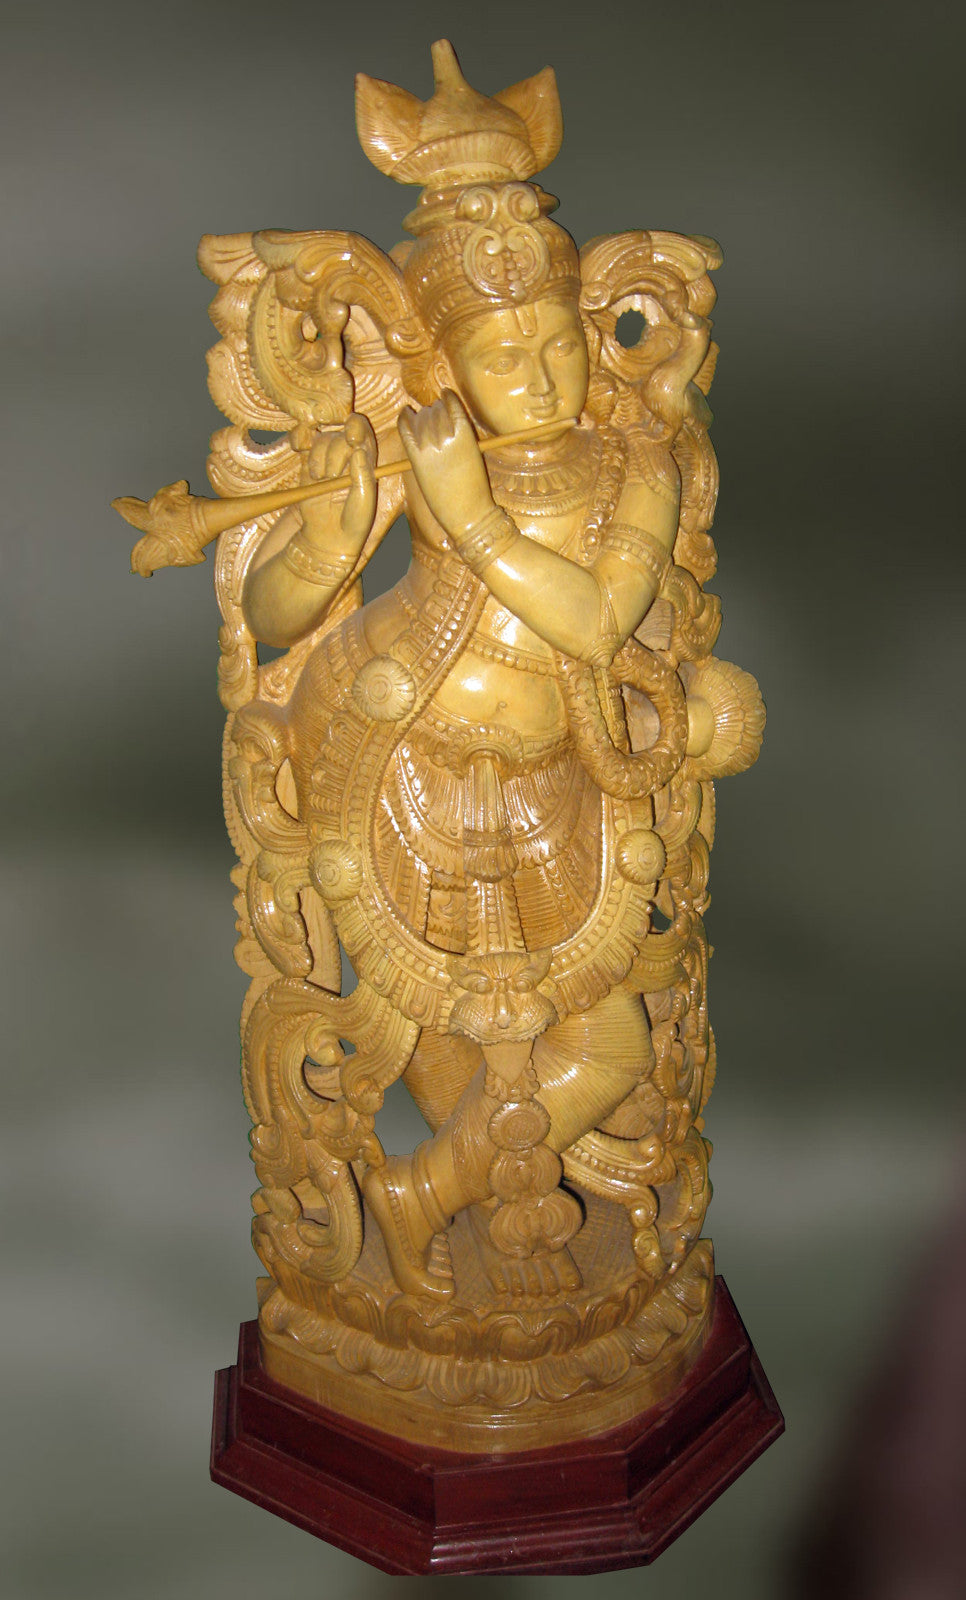 Channapatna wood sculpture of lord krishna playing flute